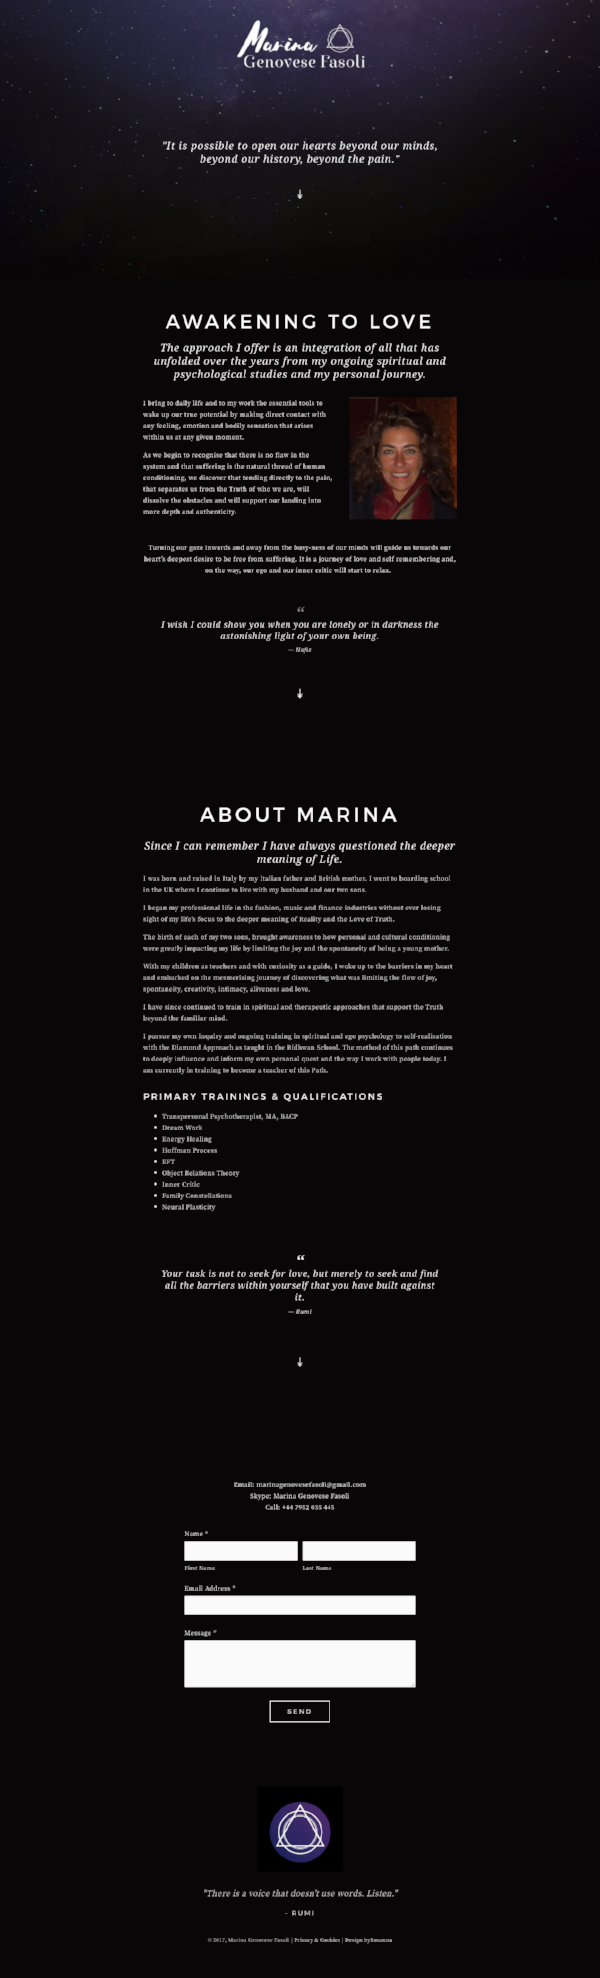 Marina website design in Squarespace | byRosanna